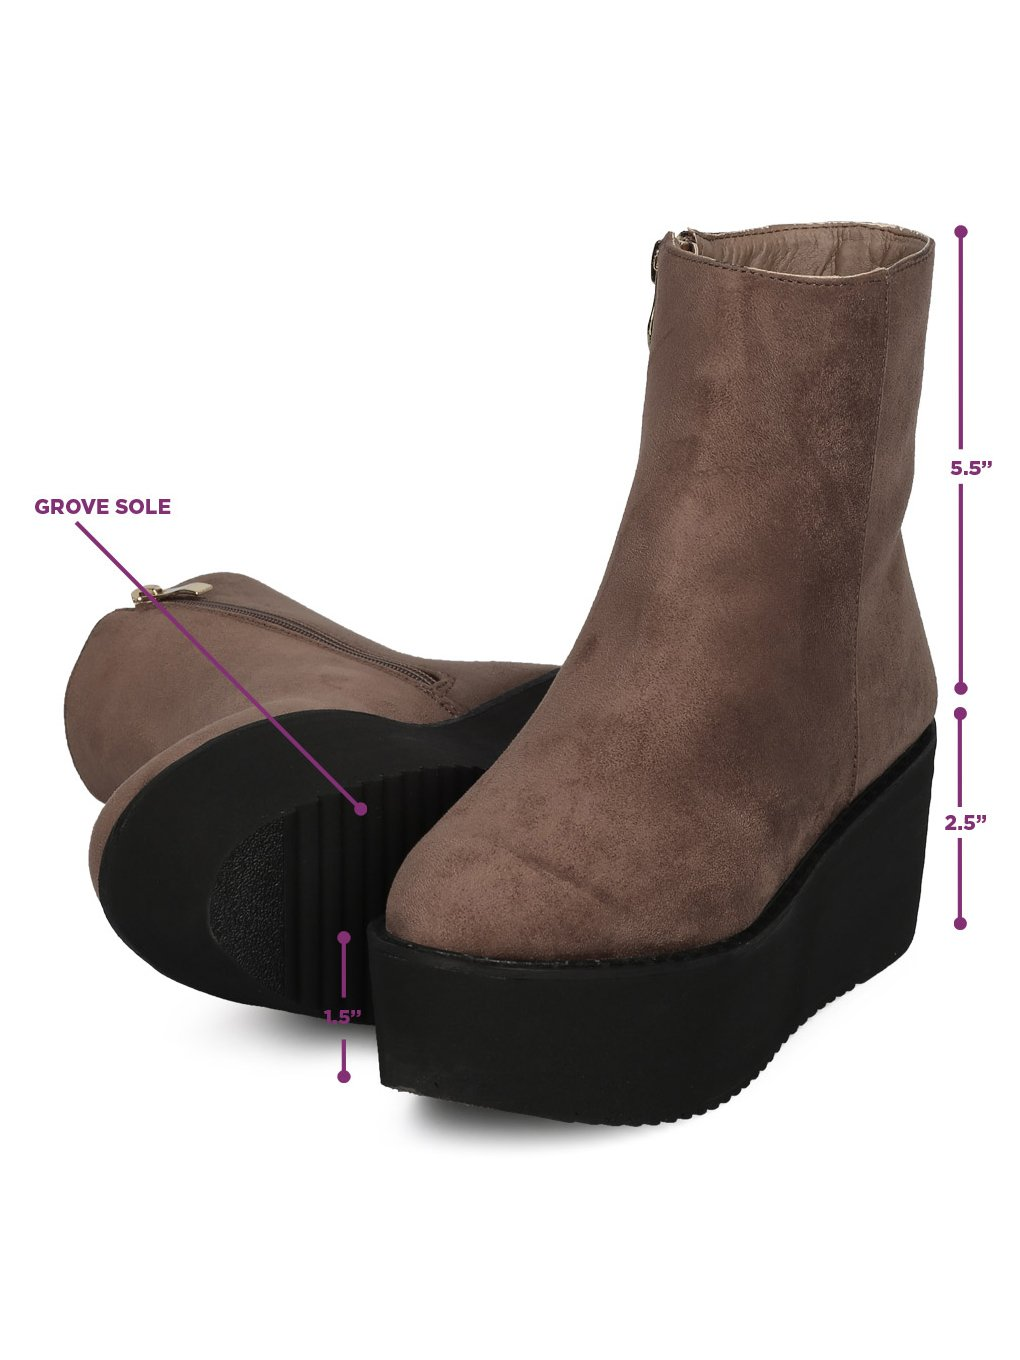 Indulge Hebe-I Women Round Toe Platform Creeper Ankle Bootie HE66 - Taupe Faux Suede (Size: 7.0) by Indulge (Image #5)